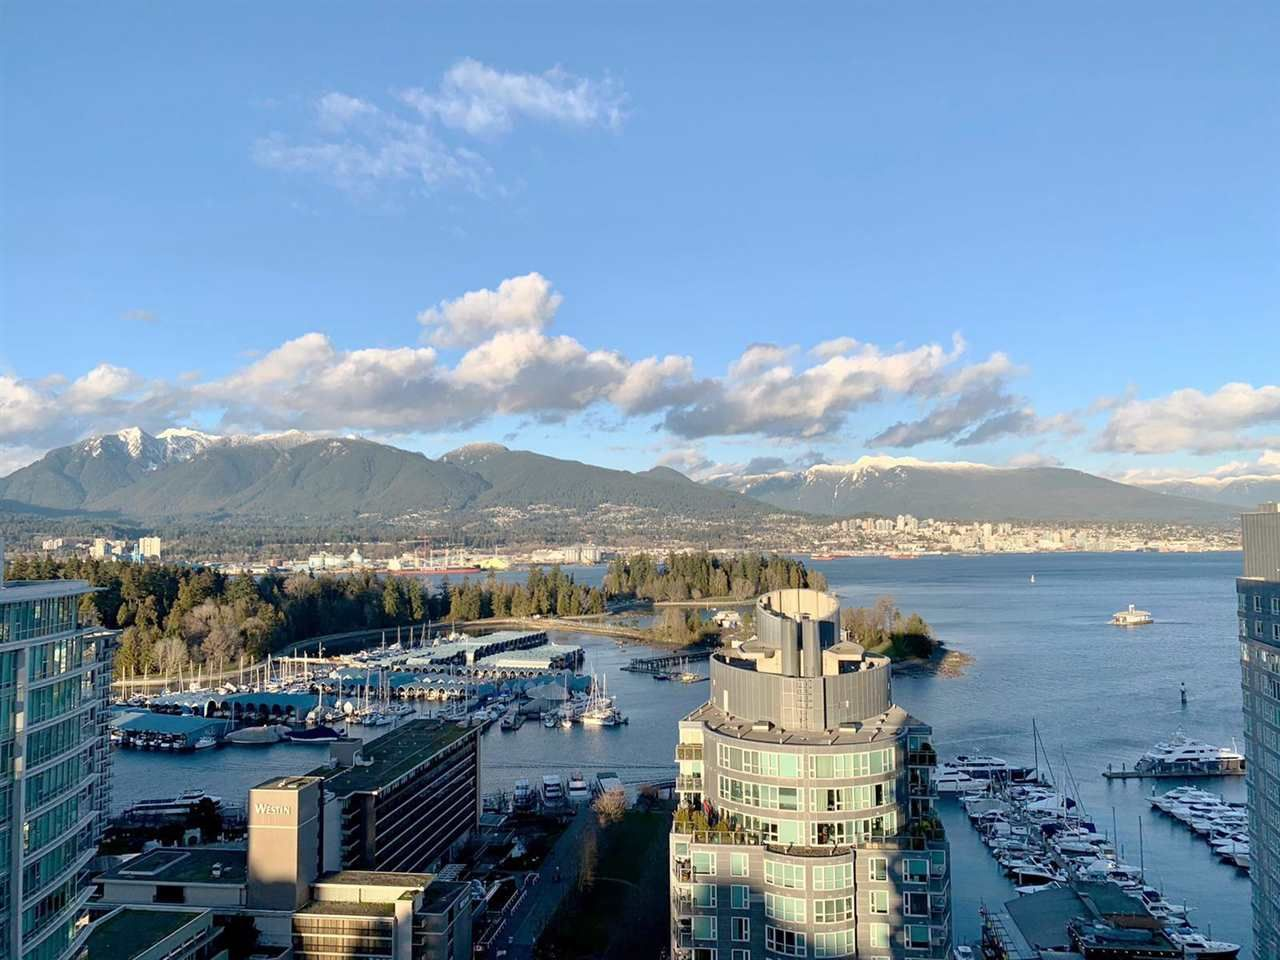 """Main Photo: 2101 620 CARDERO Street in Vancouver: Coal Harbour Condo for sale in """"CARDERO"""" (Vancouver West)  : MLS®# R2577722"""